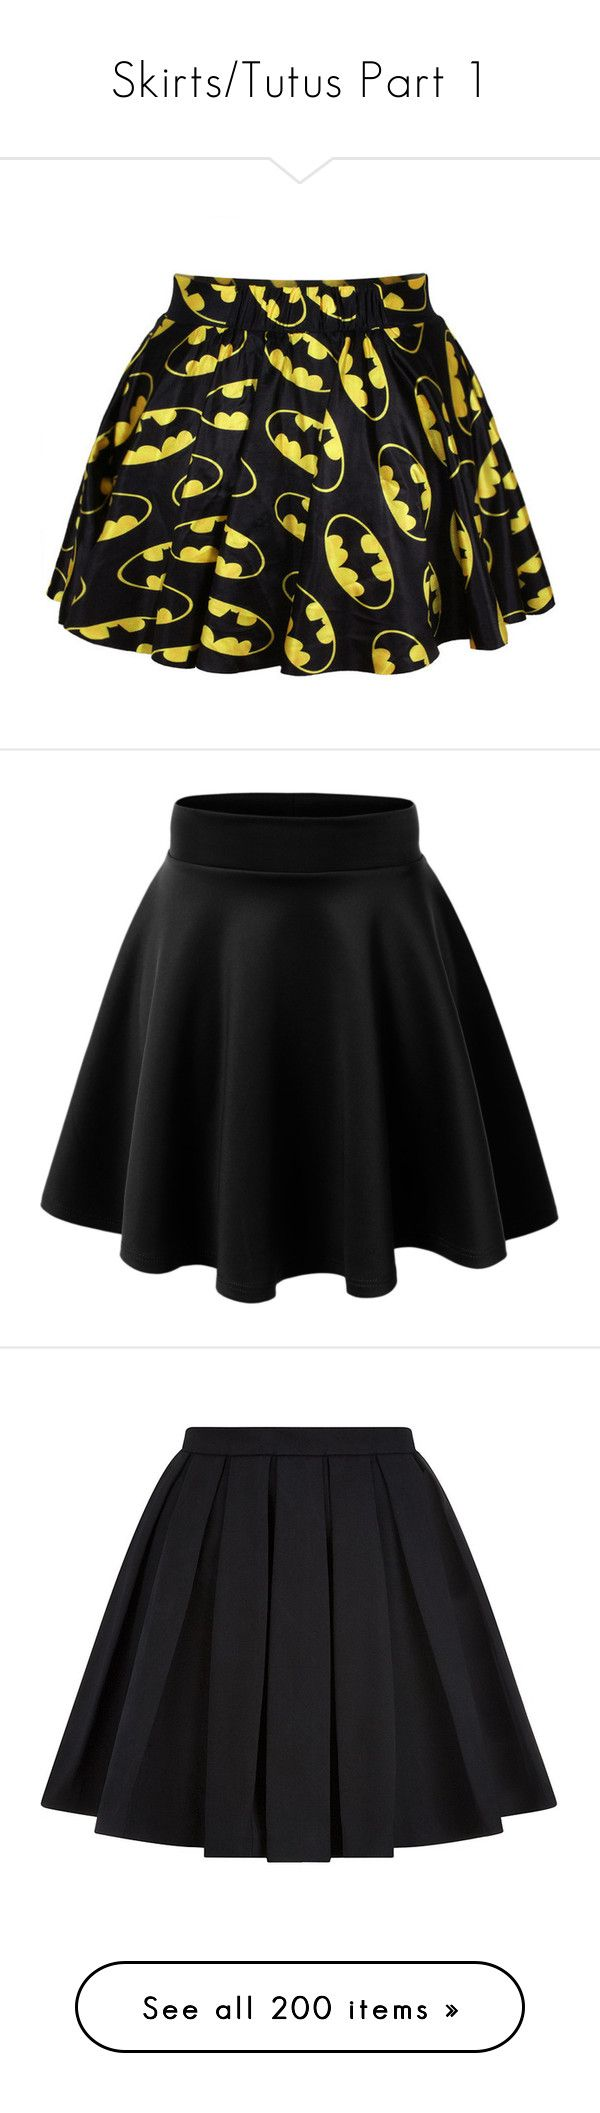 """""""Skirts/Tutus Part 1"""" by kookik ❤ liked on Polyvore featuring skirts, bottoms, batman, saias, patterned skirt, print skirt, black, stretchy skirt, skater skirt and stretch skirt"""